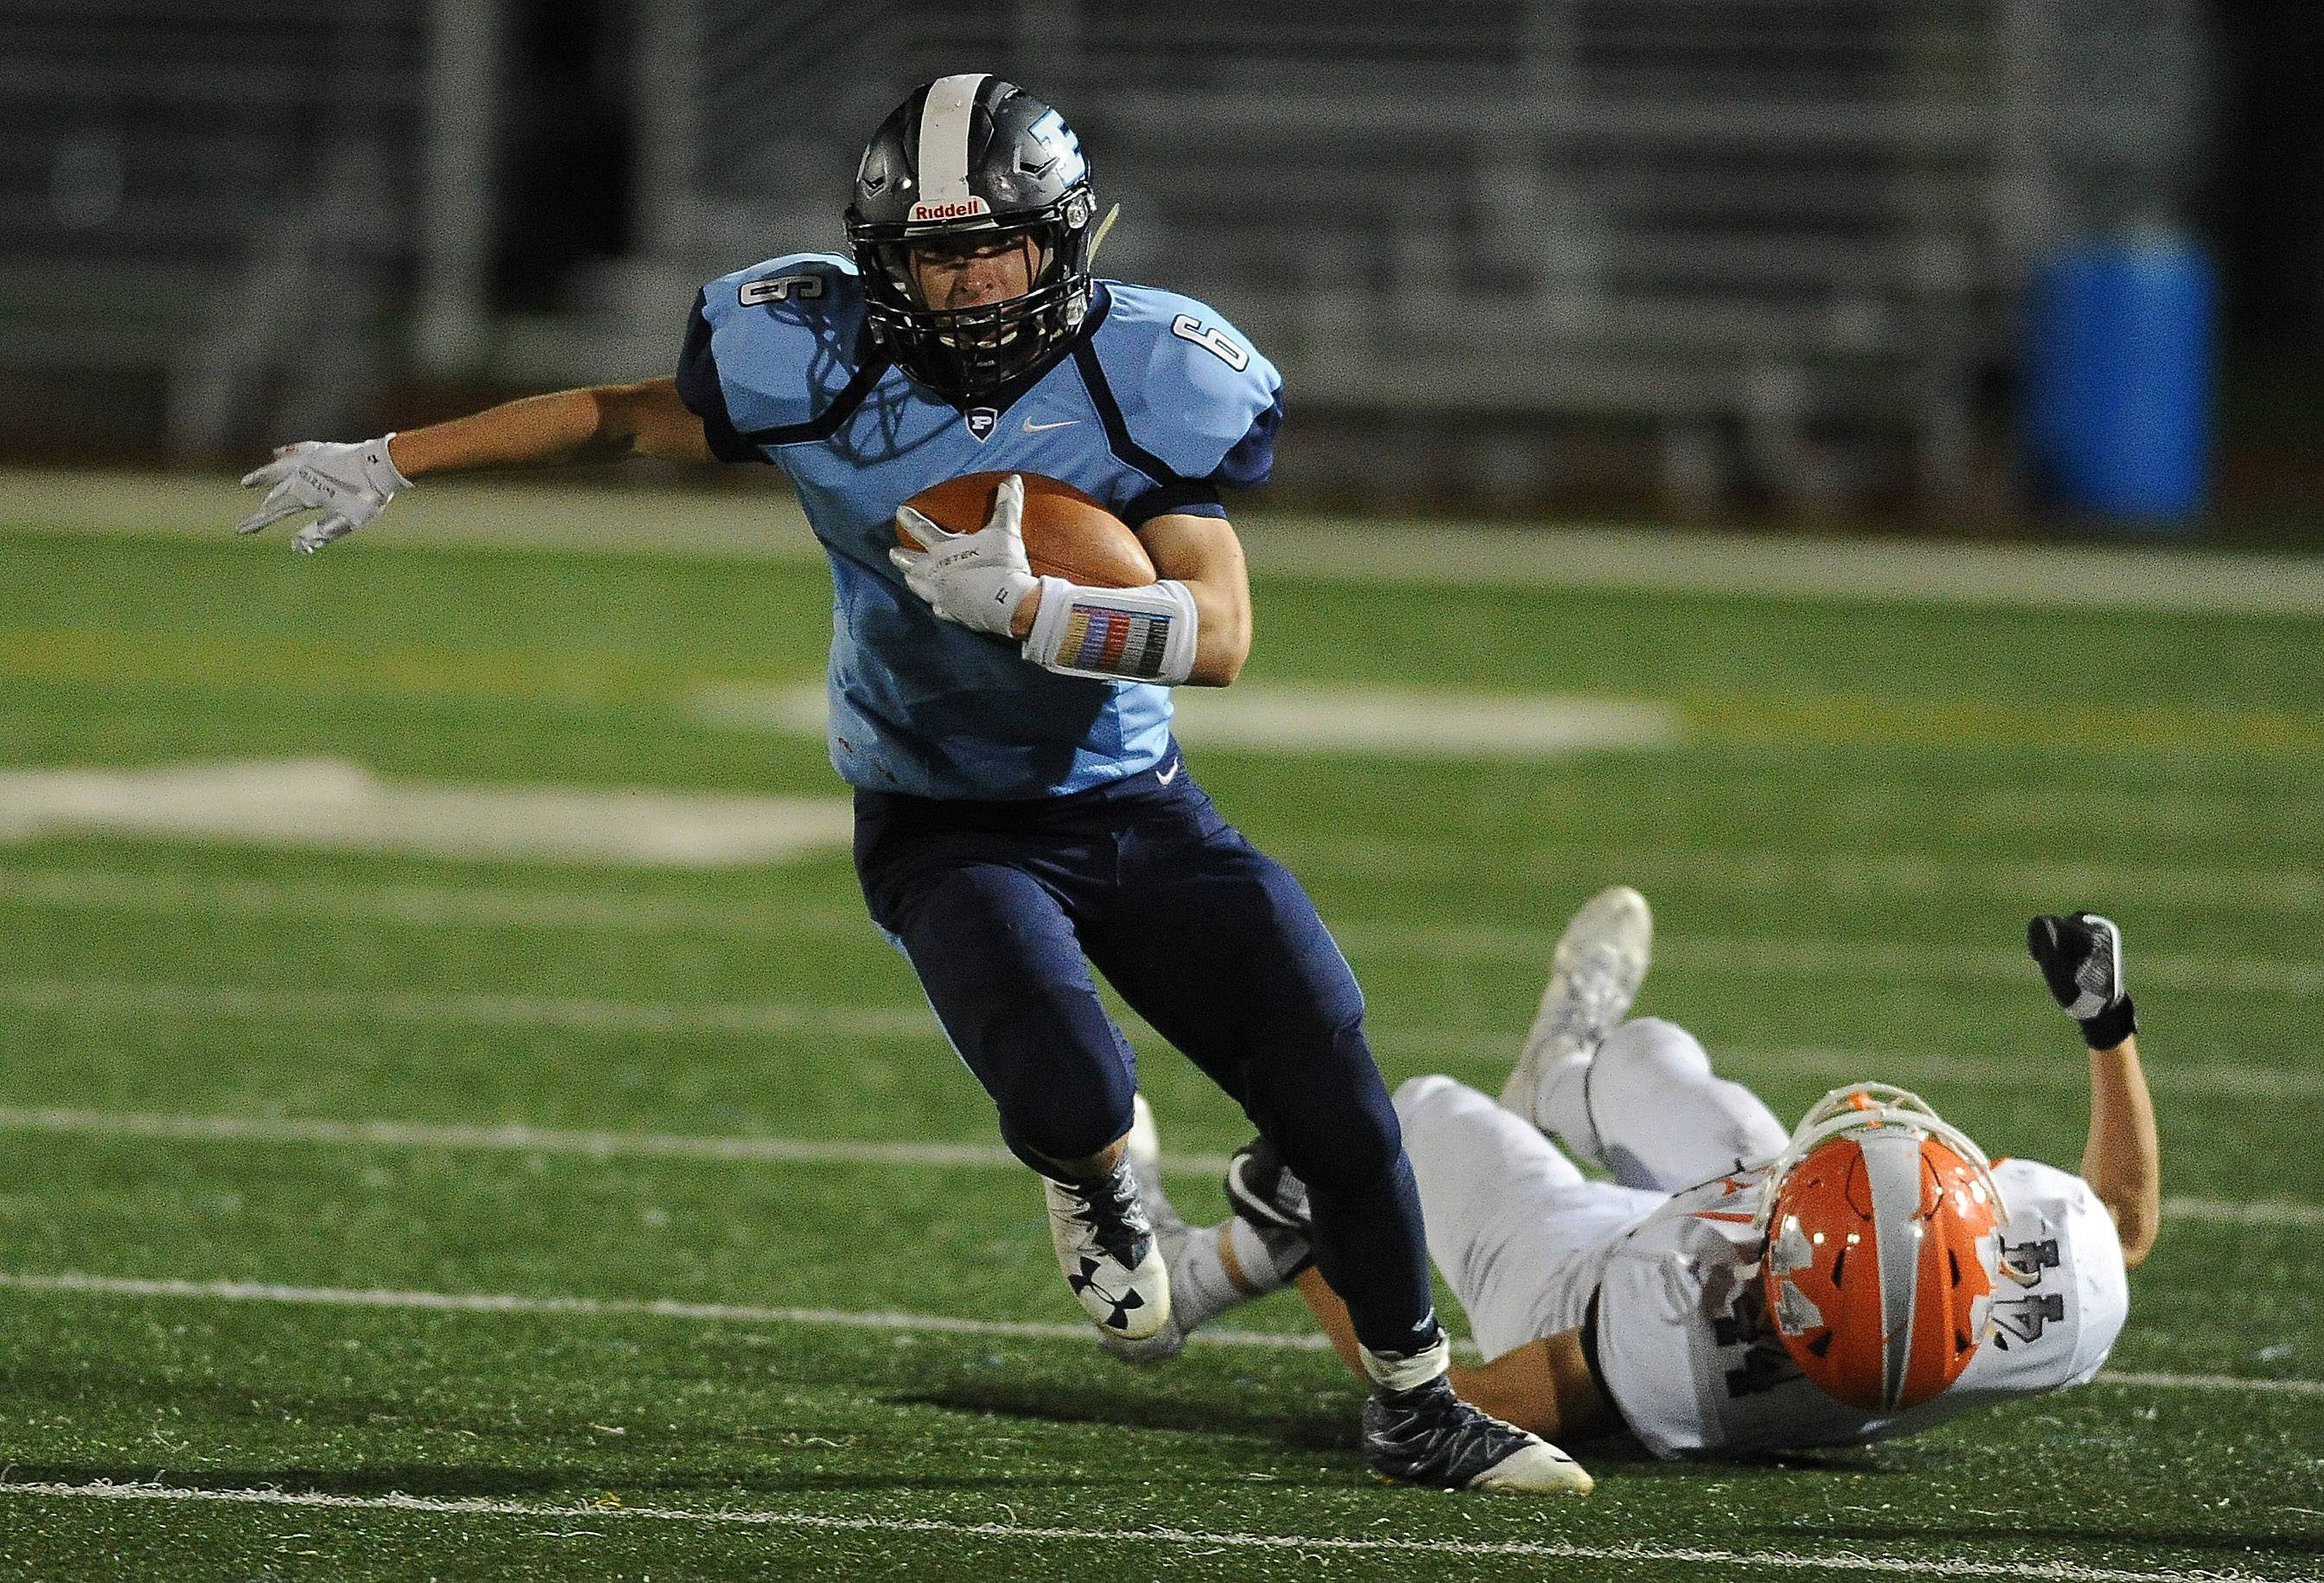 Prospect's Dante Cecala plows ahead against Hersey's Colton Kamysz for a 17-yard gain in the first half Friday at Prospect.